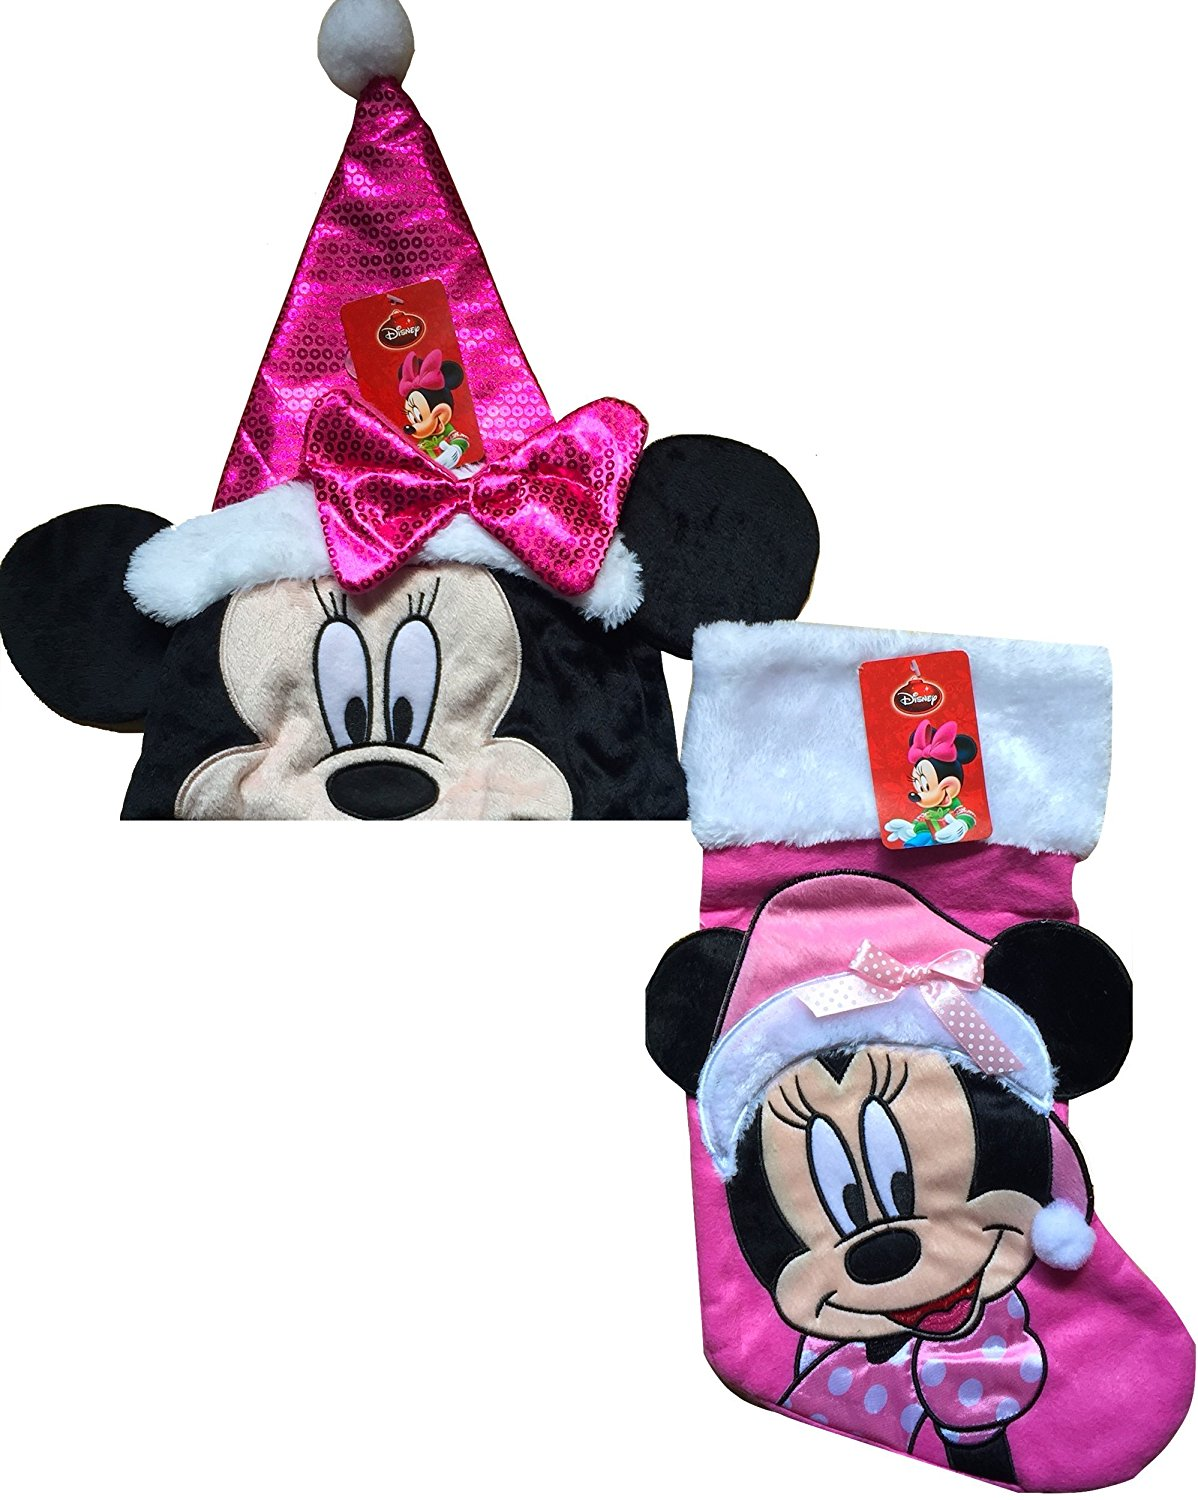 038e201ba41f8 Minnie Mouse Christmas Santa Hat with Minnie Mouse Christmas Stocking Gift  Set (pink)